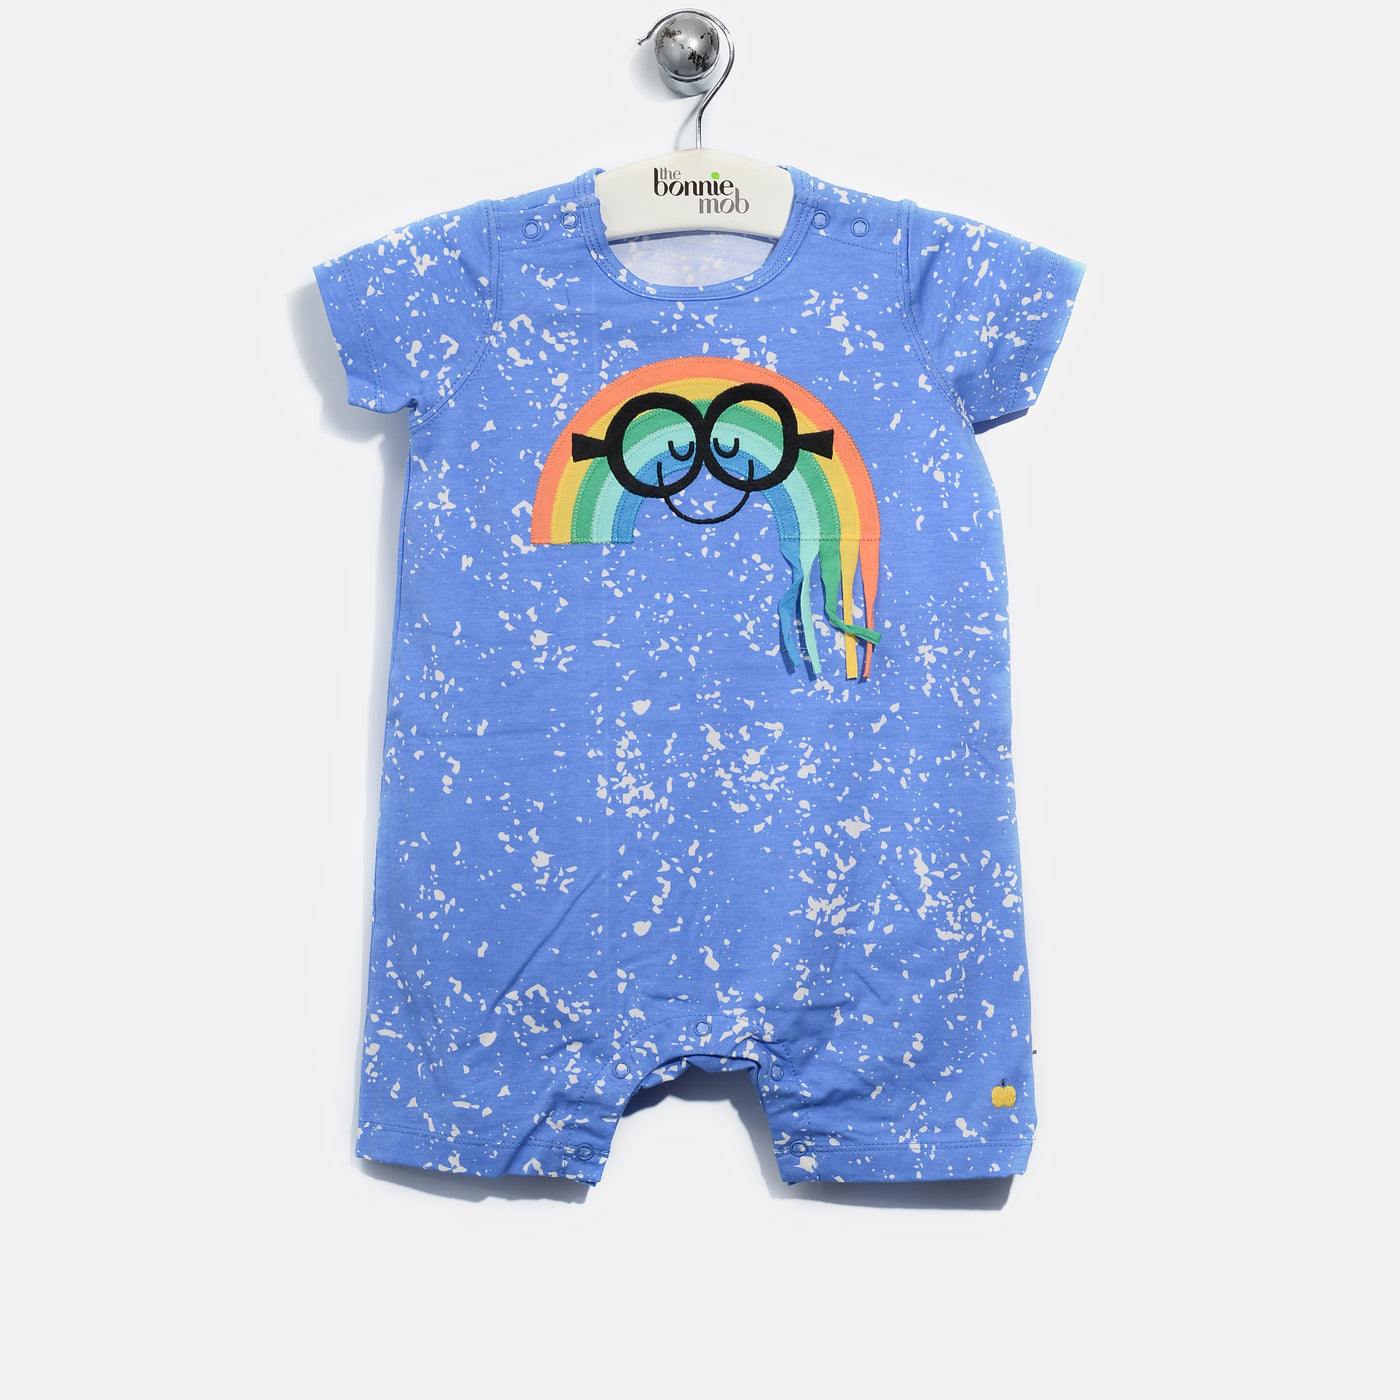 L-ARCHIE-Smiley Rainbow Tassel Romper-Baby-Sea